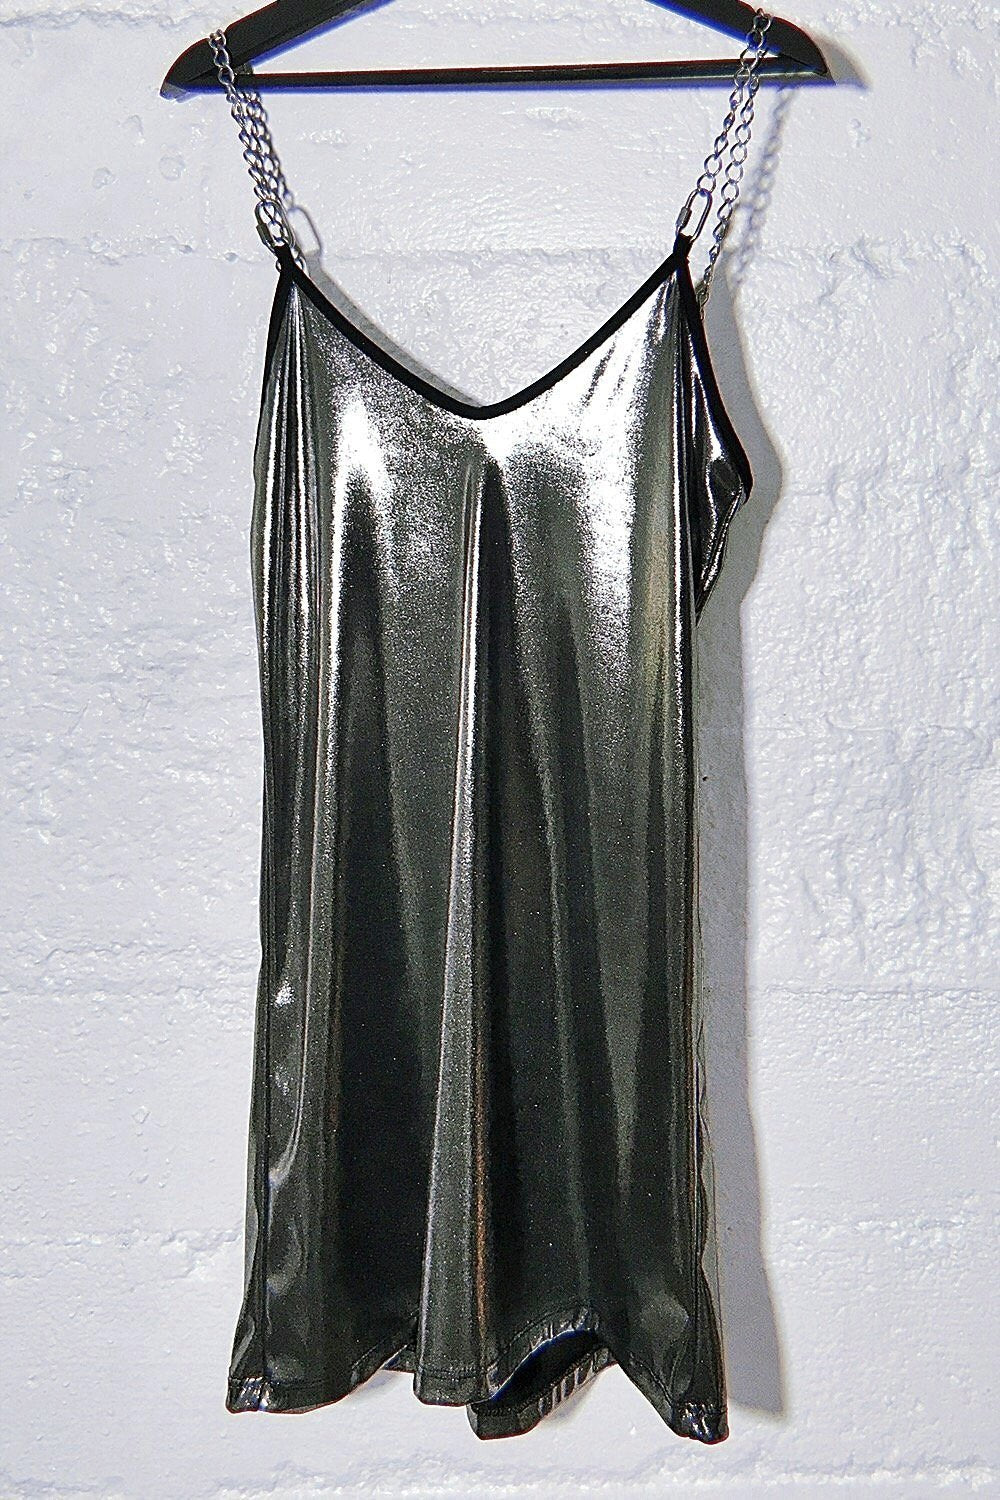 PRE-ORDER The Heavy Metal Chain Dress in Liquid Lamé Silver